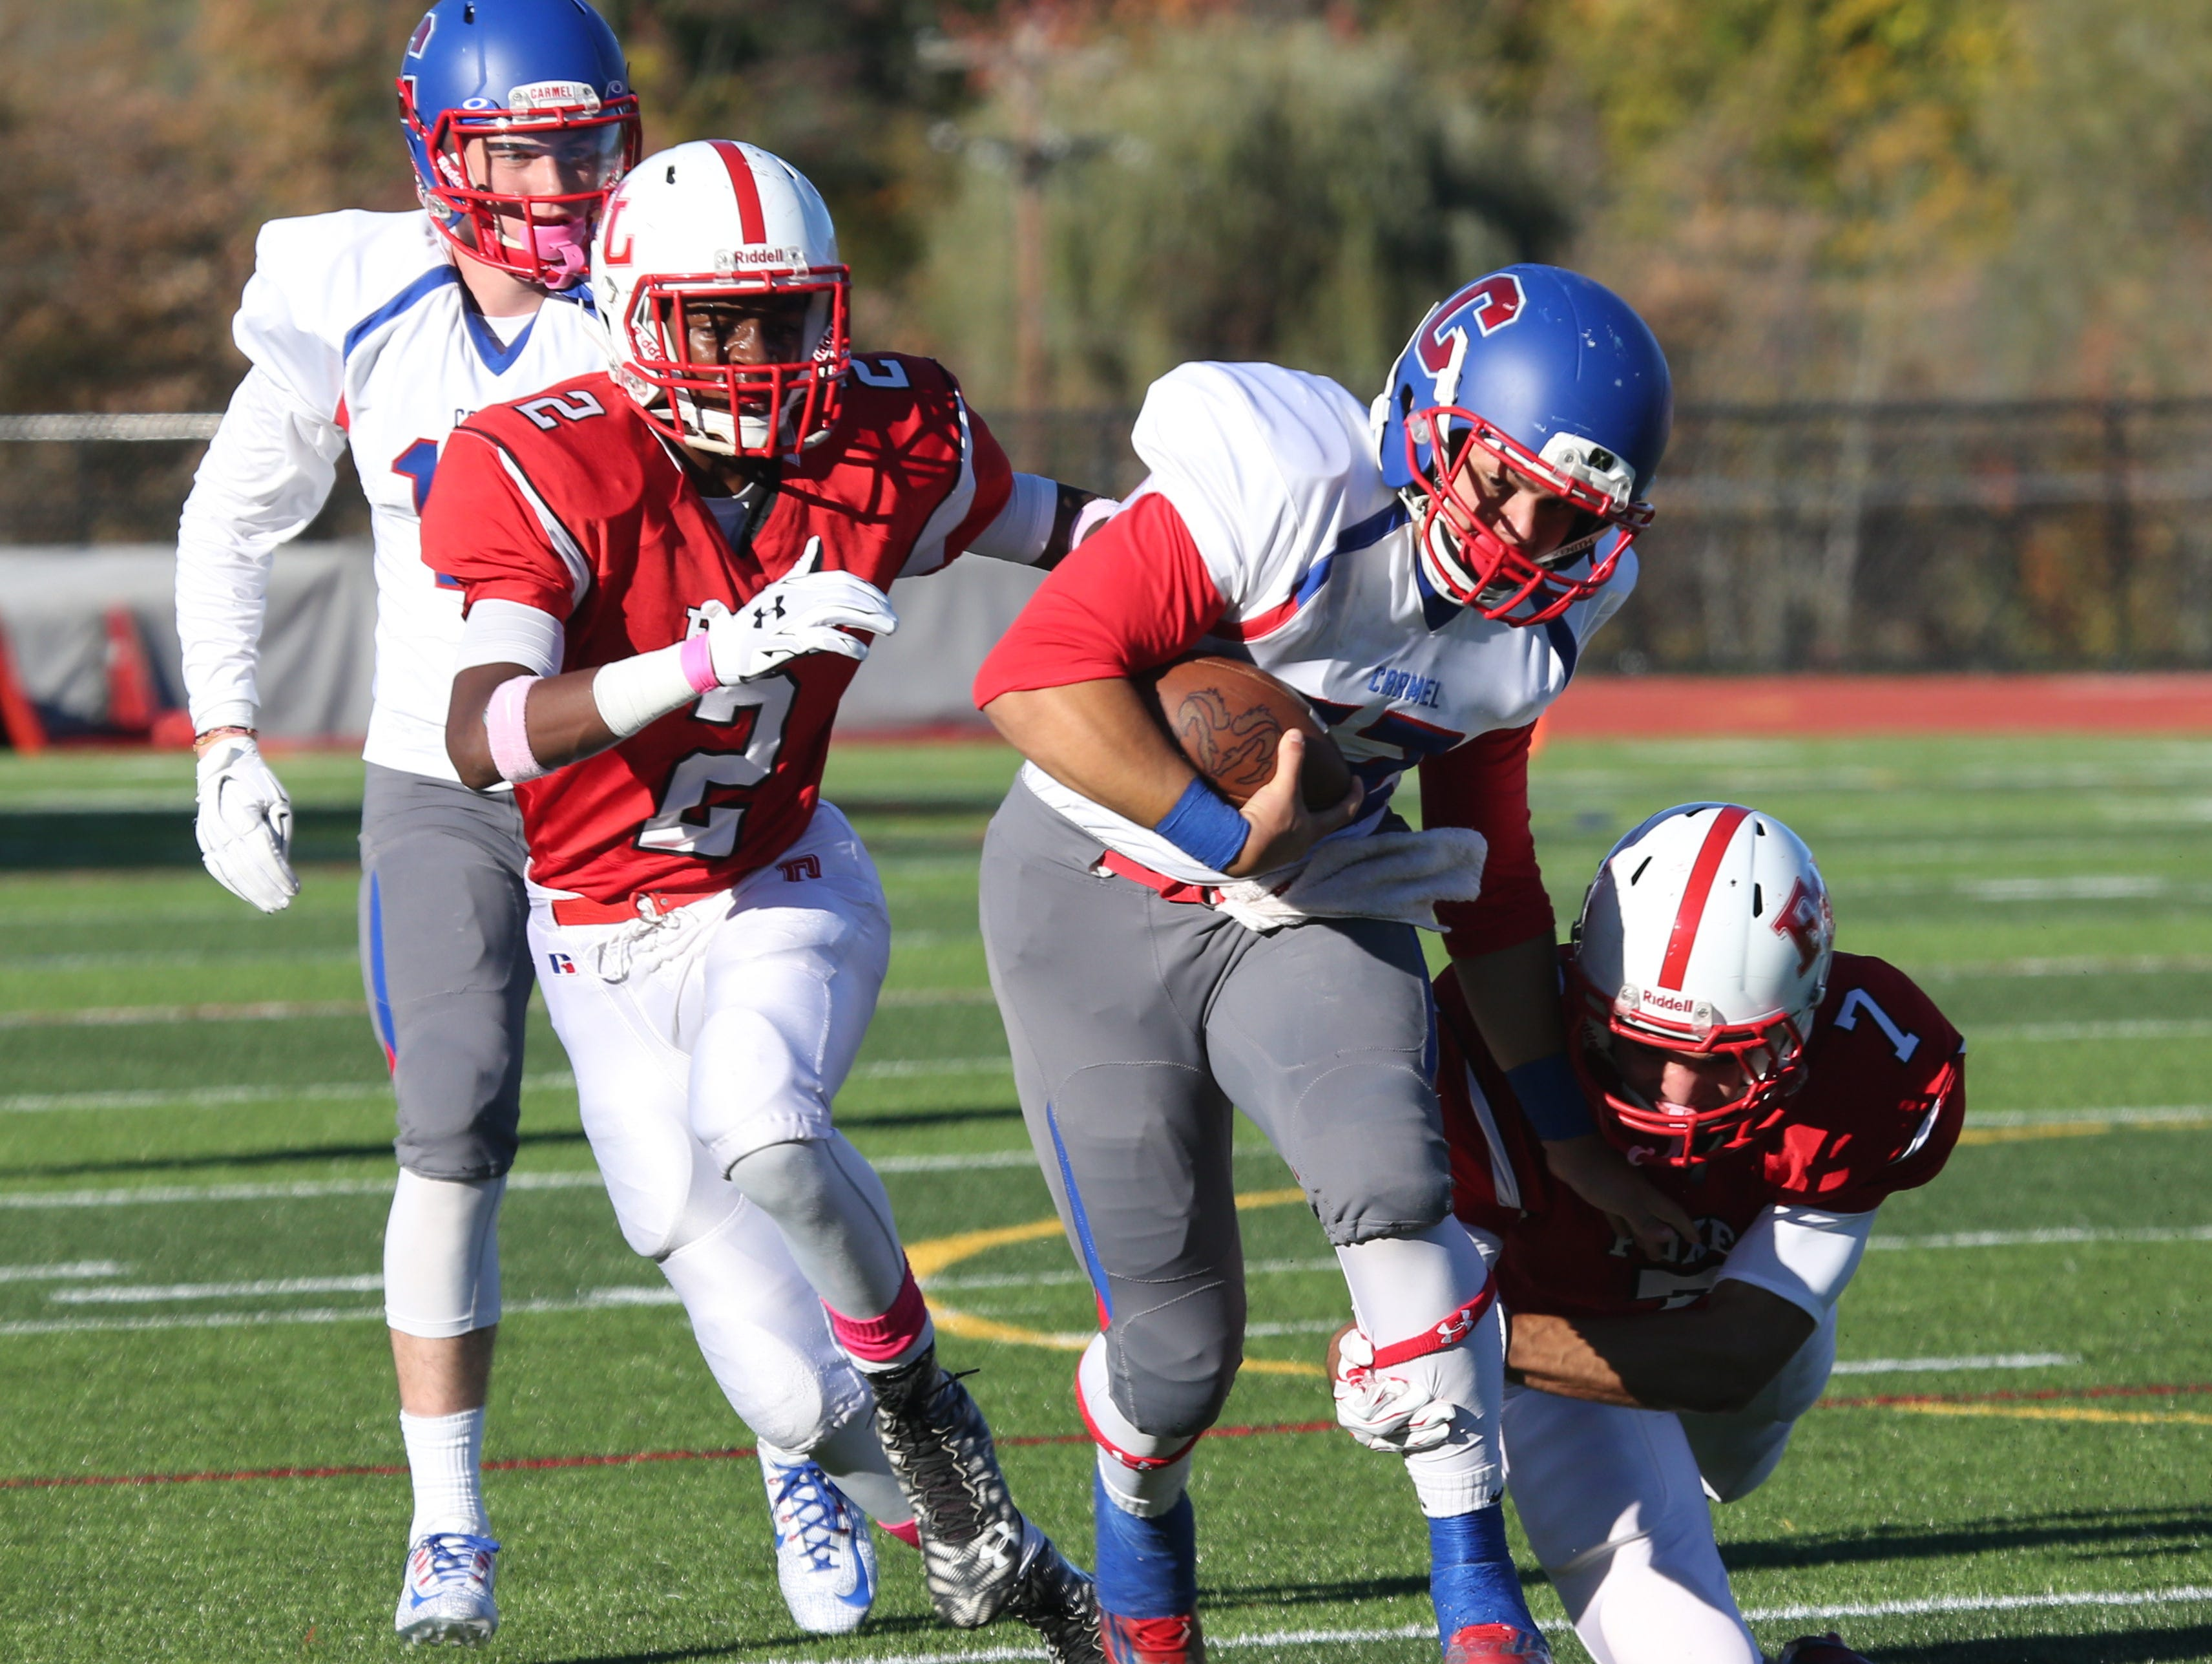 Carmel quarterback Joe Rodriguez gains some yards, as Fox Lane's Kevin Downes and Austin Brand defend during their game in Bedford, Oct. 10, 2105.